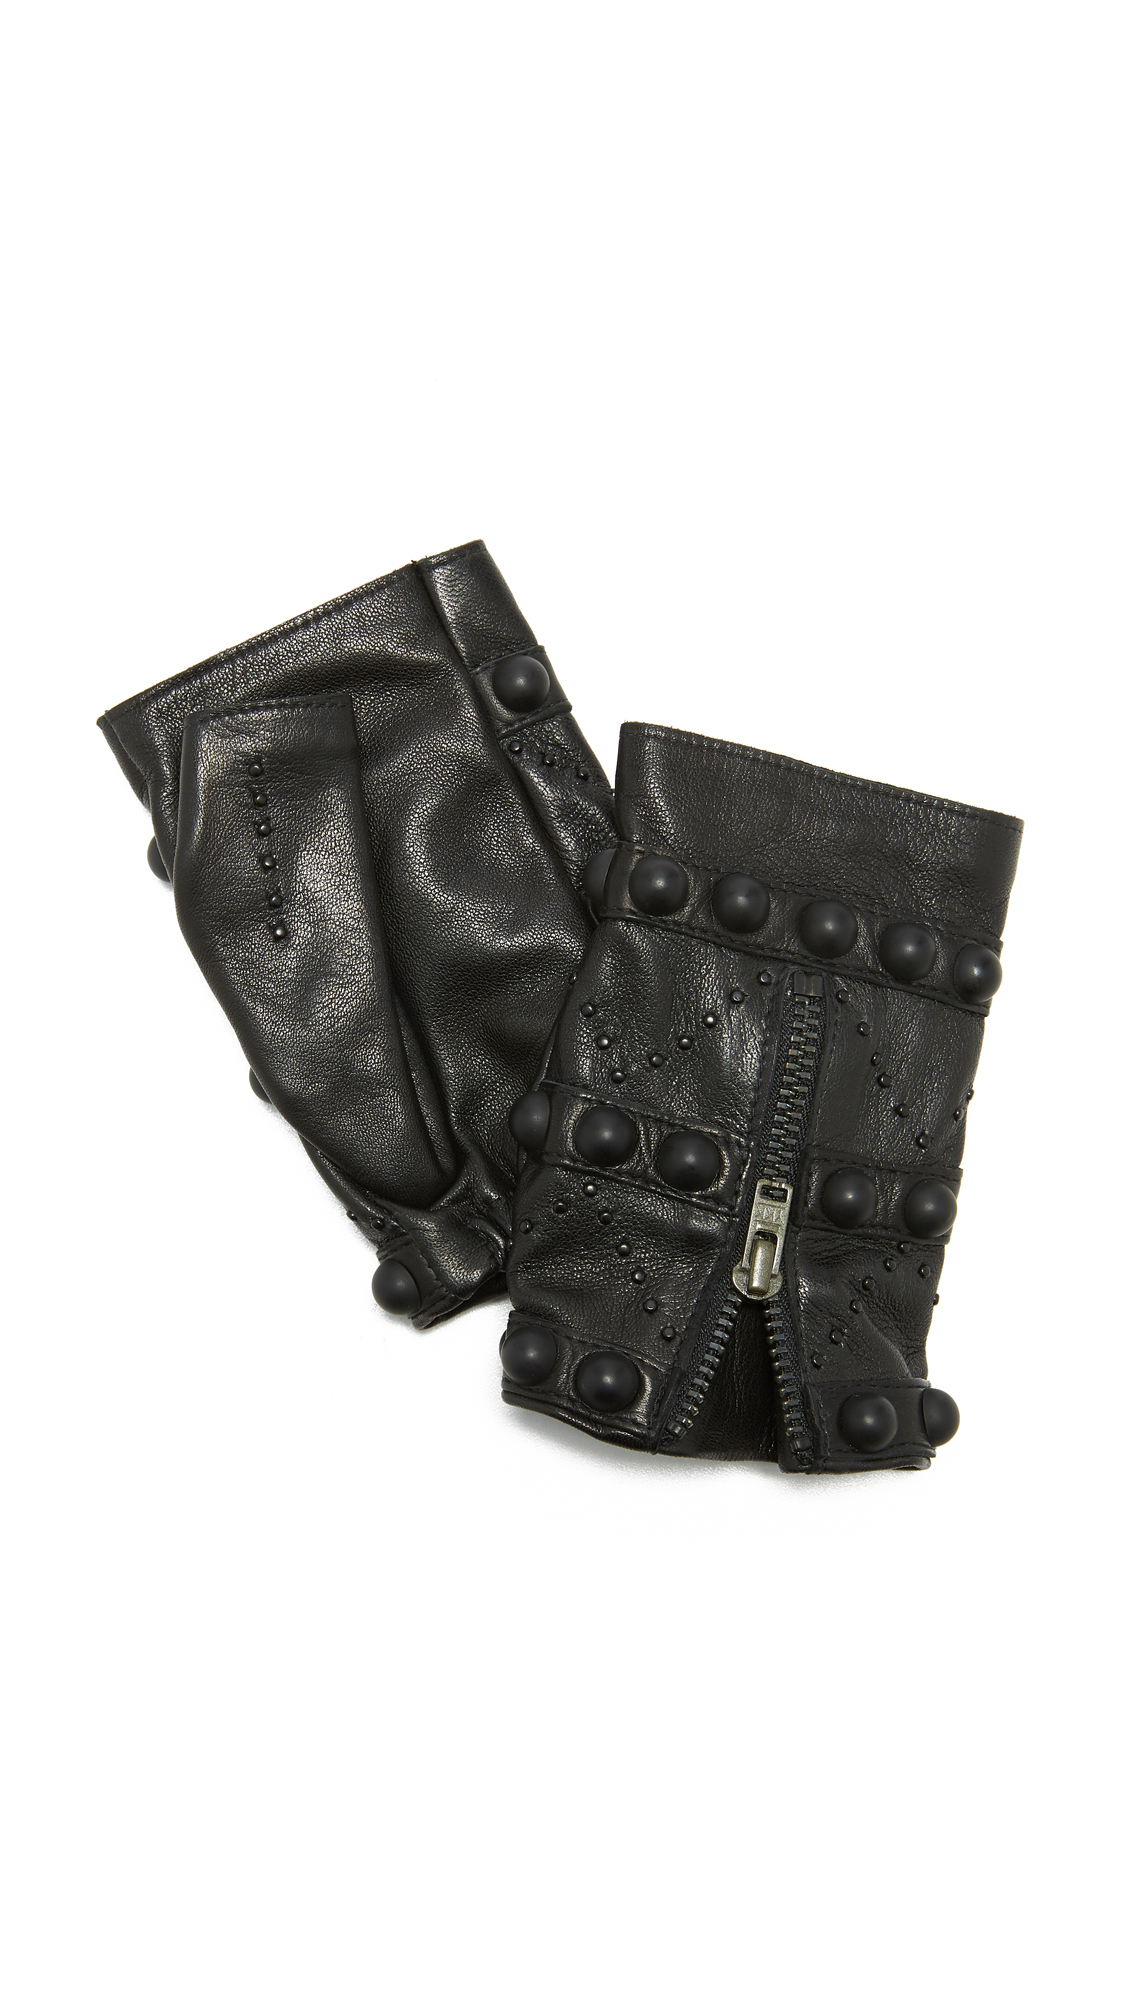 Agnelle Mitaine Studded Leather Gloves - Black